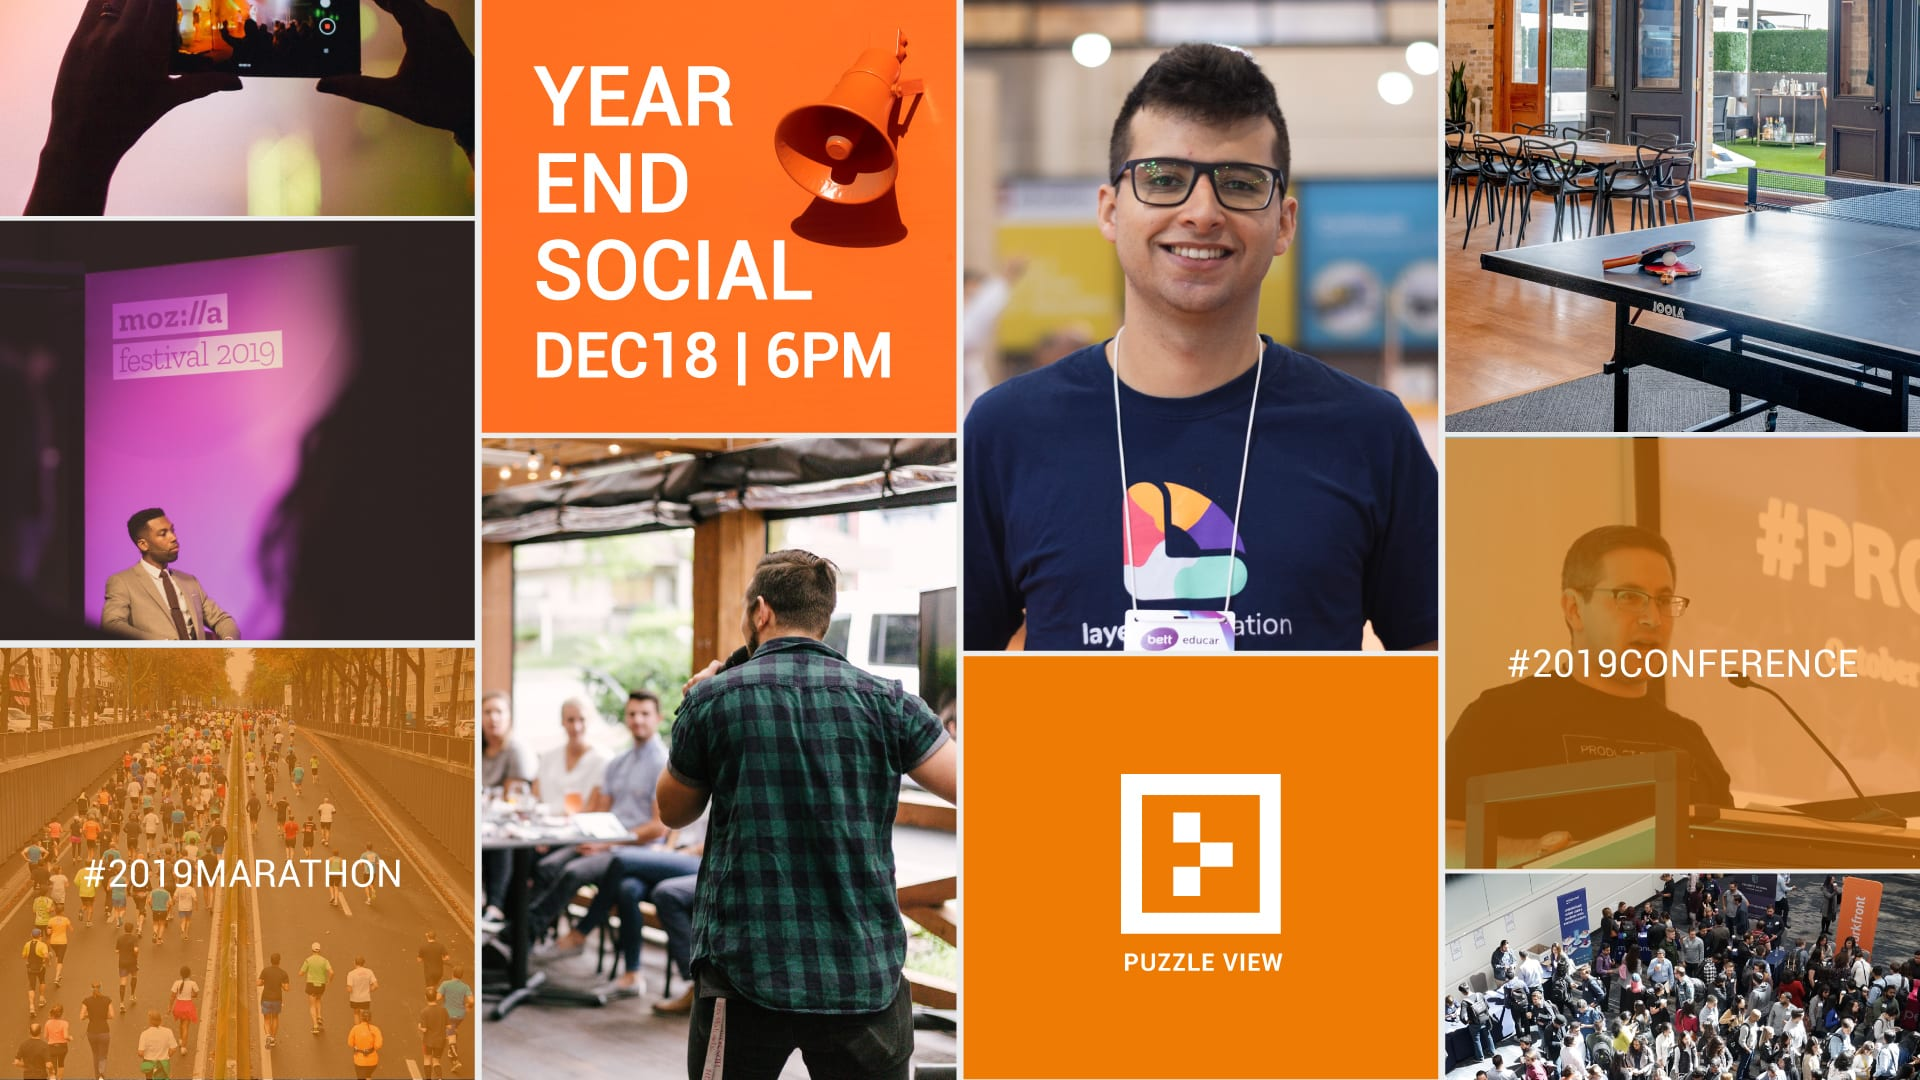 year end social, company events and other images in collage